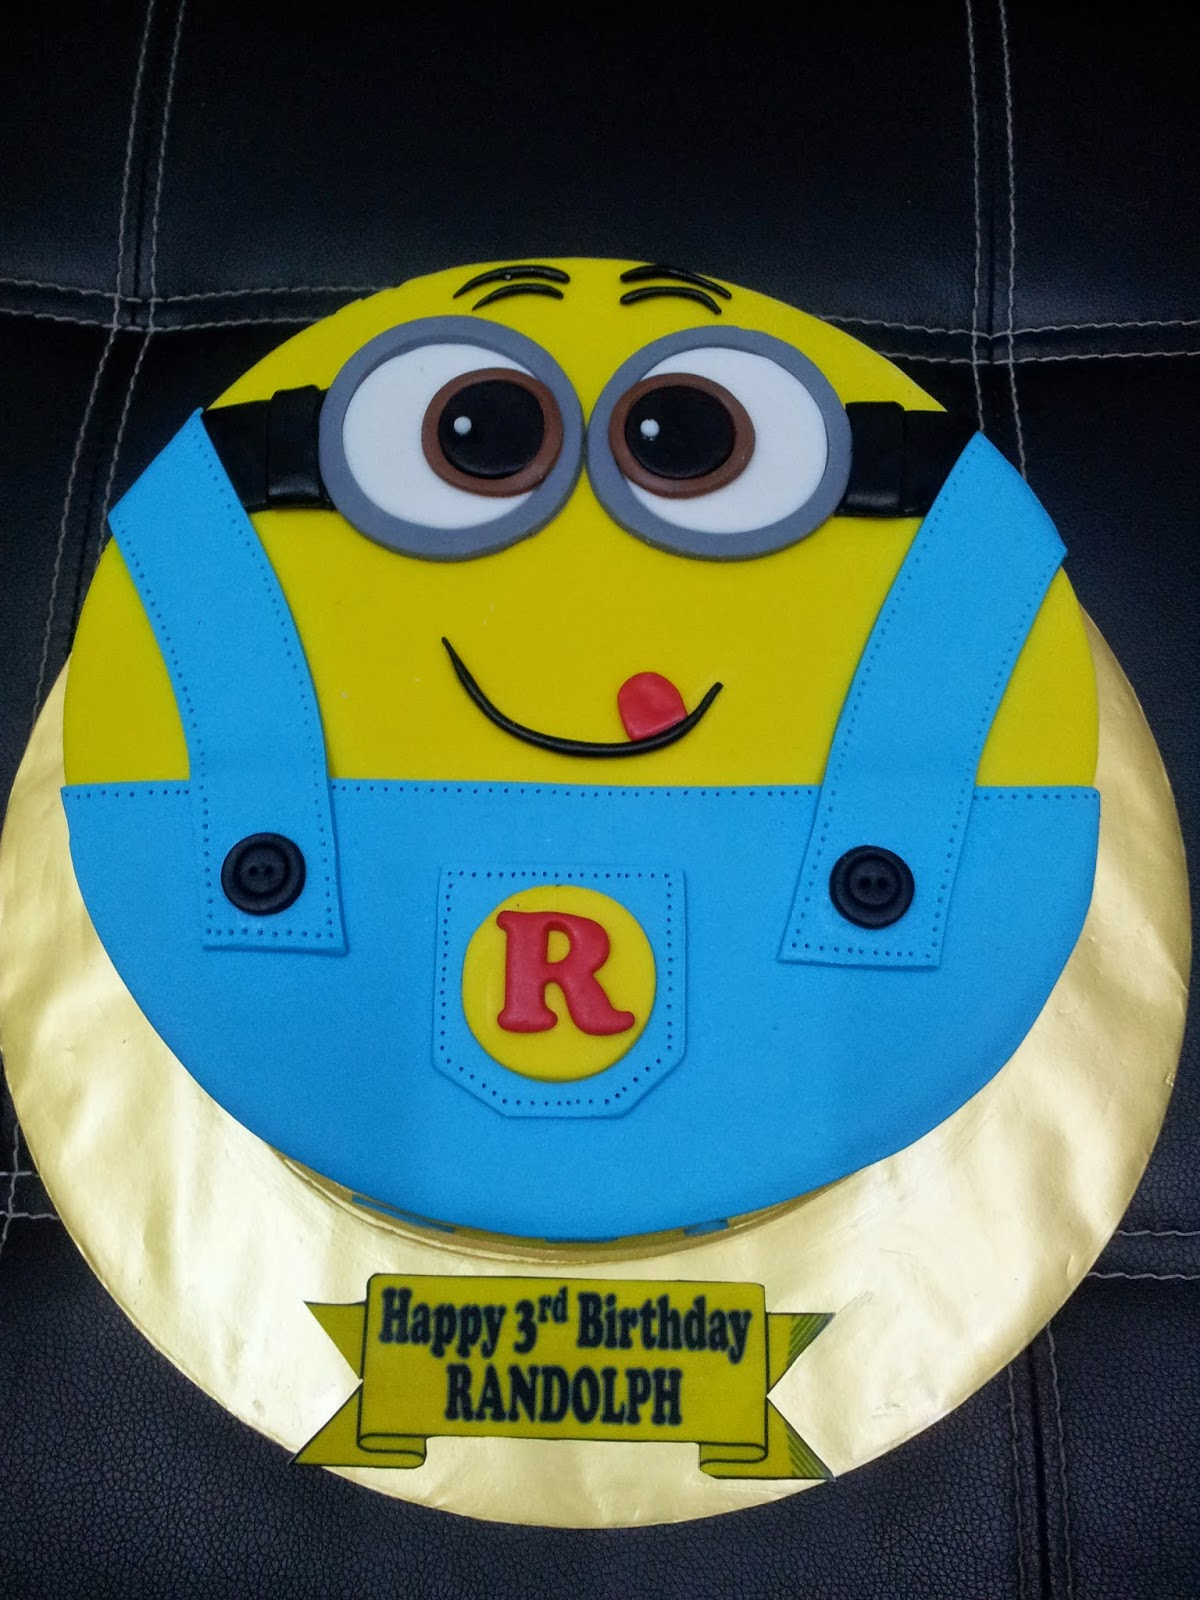 L Mis Cakes Amp Cupcakes Ipoh Contact 012 5991233 Minion